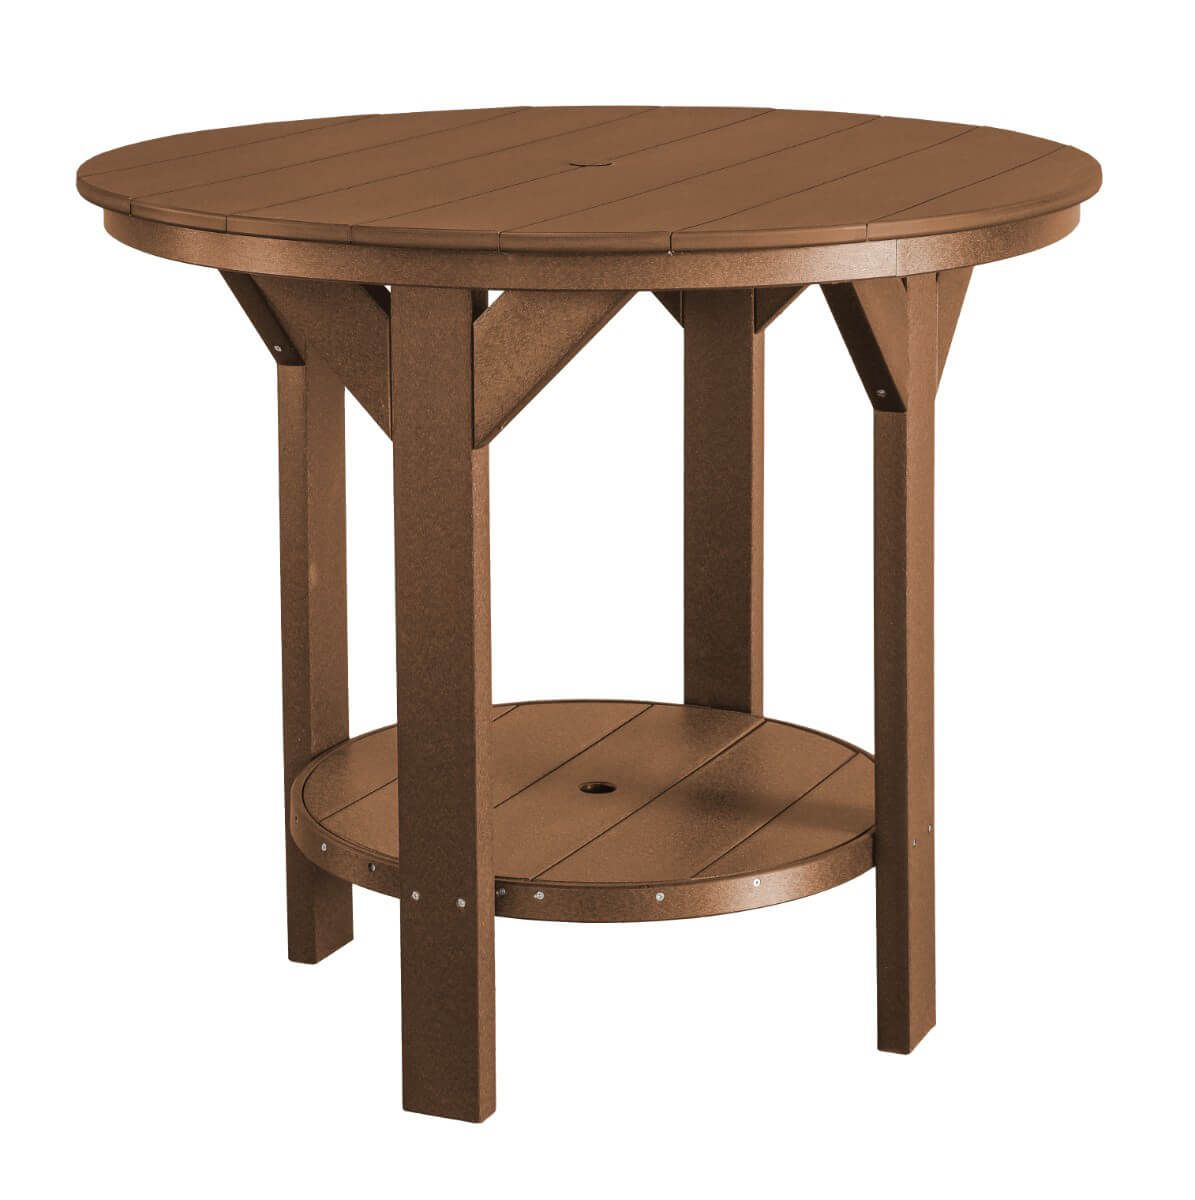 Tudor Brown Sidra Outdoor Pub Table